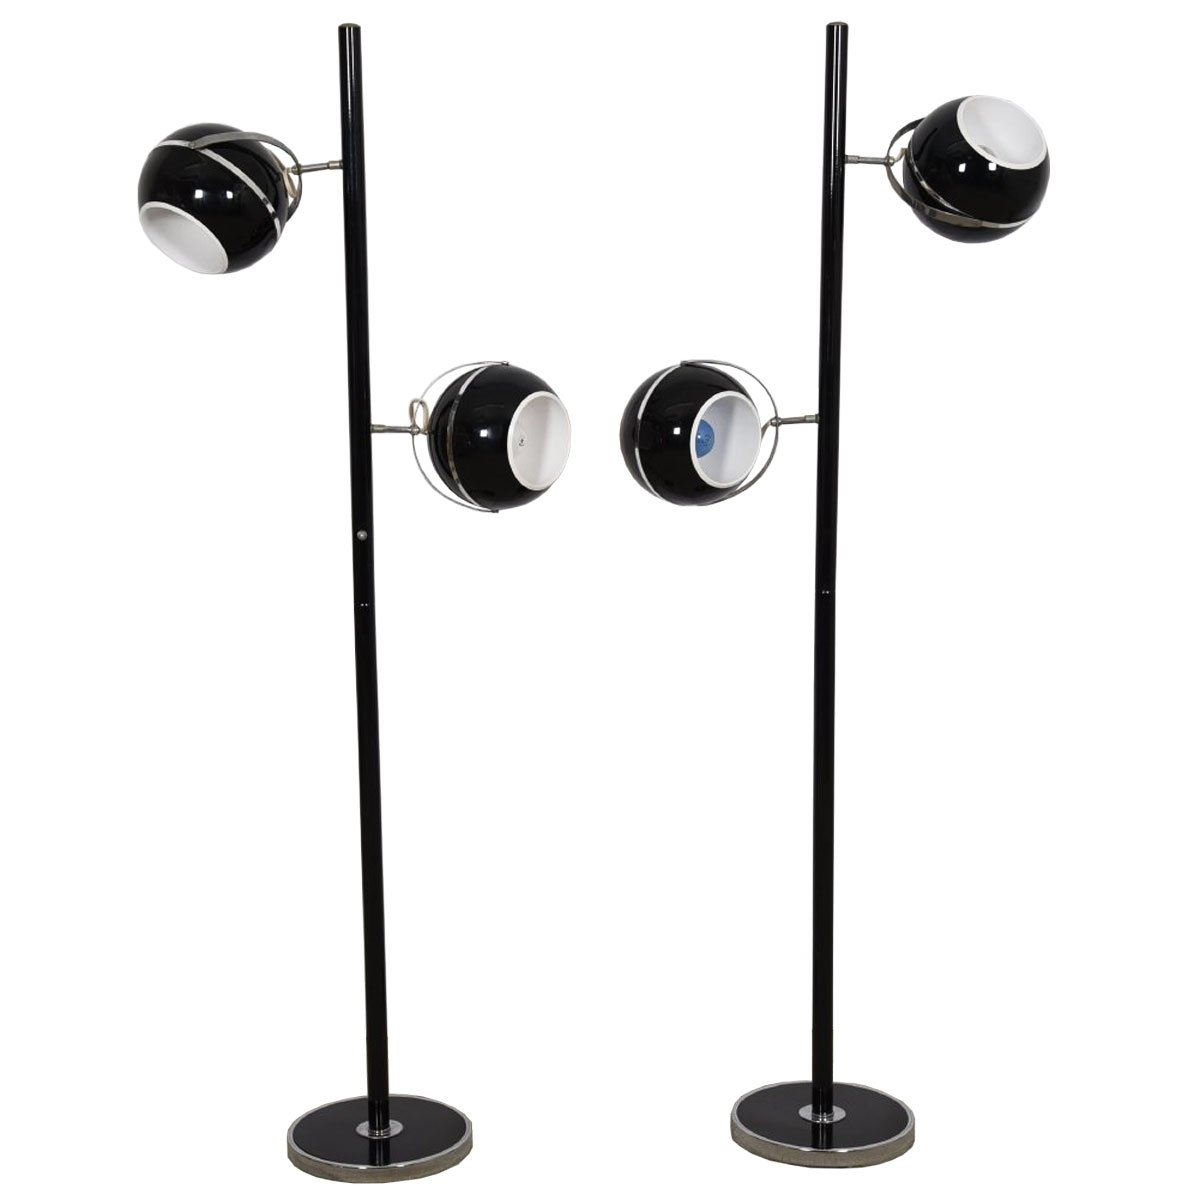 Pair of Black and Chrome Eyeball Floor Lamps